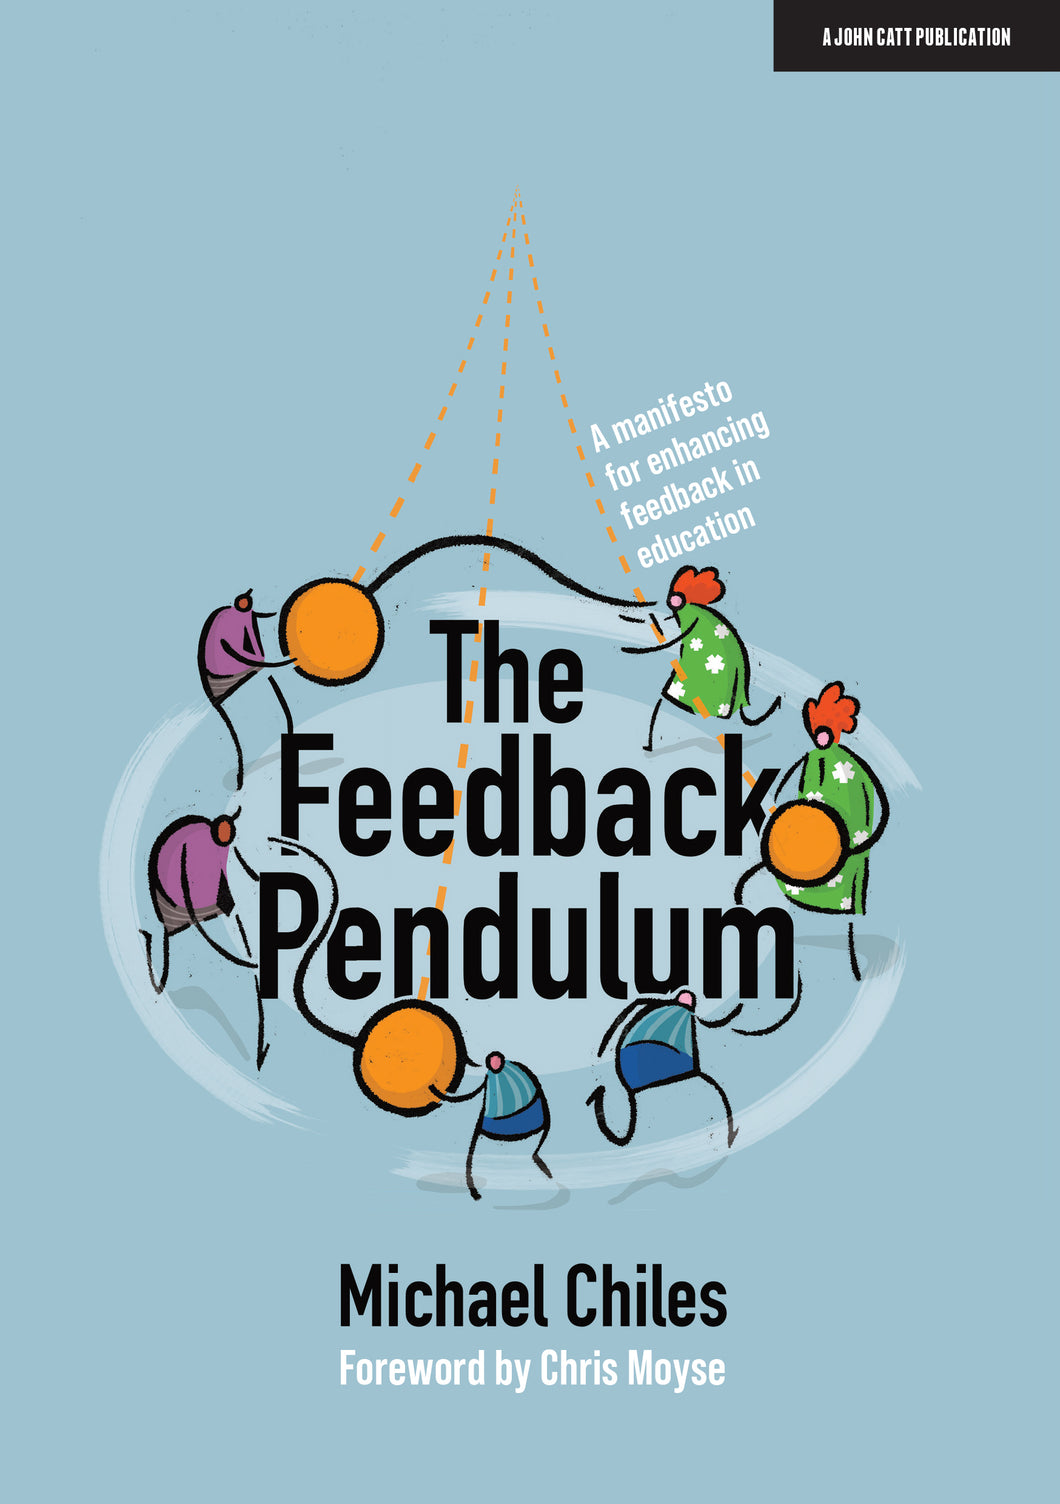 The Feedback Pendulum: A manifesto for enhancing feedback in education